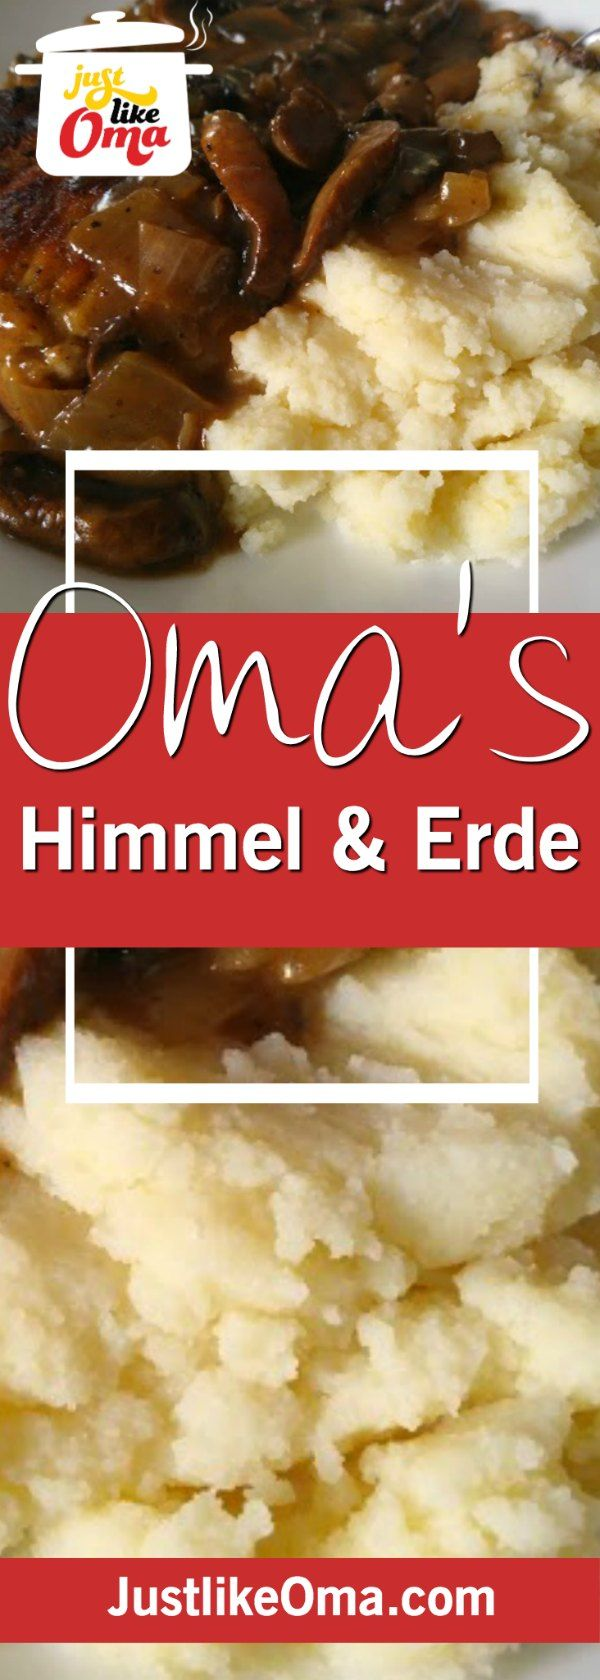 Himmel und Erde, aka Heaven and Earth, combining apples and potatoes. DELICIOUS and SO German! ❤️ http://www.quick-german-recipes.com/himmel-und-erde.html